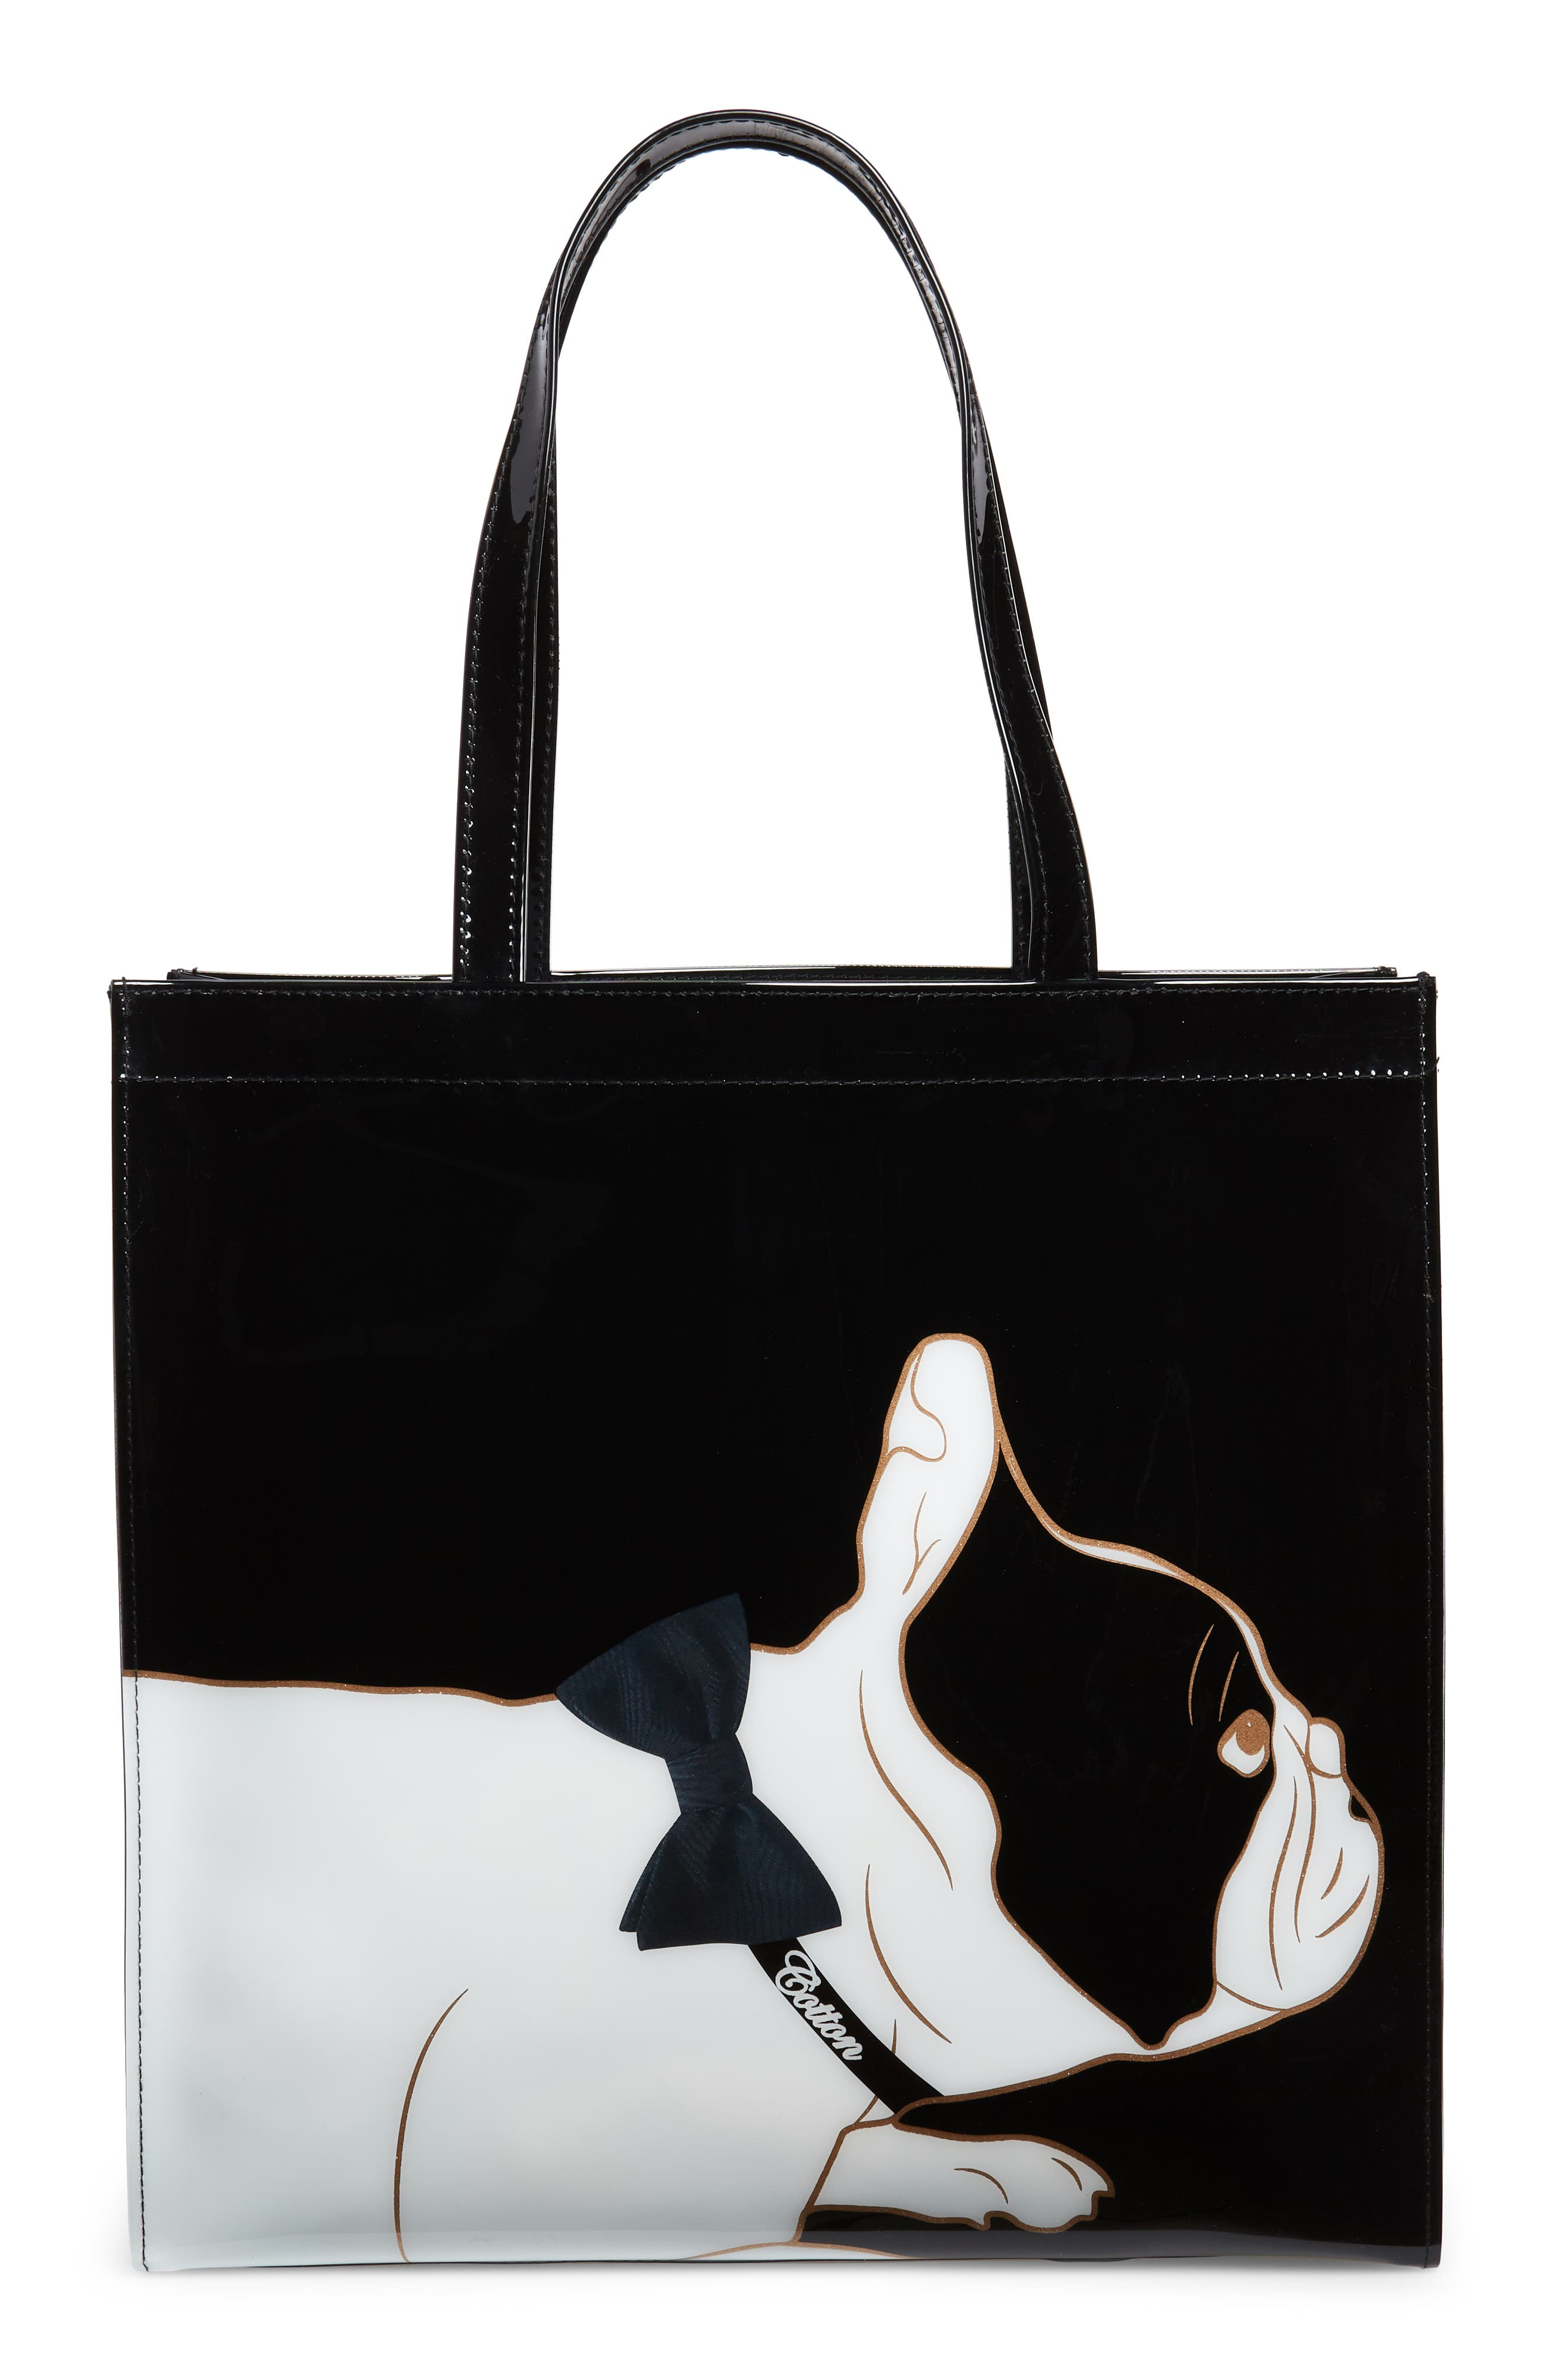 TED BAKER LONDON,                             Large Alyacon French Bulldog Icon Tote,                             Alternate thumbnail 3, color,                             001